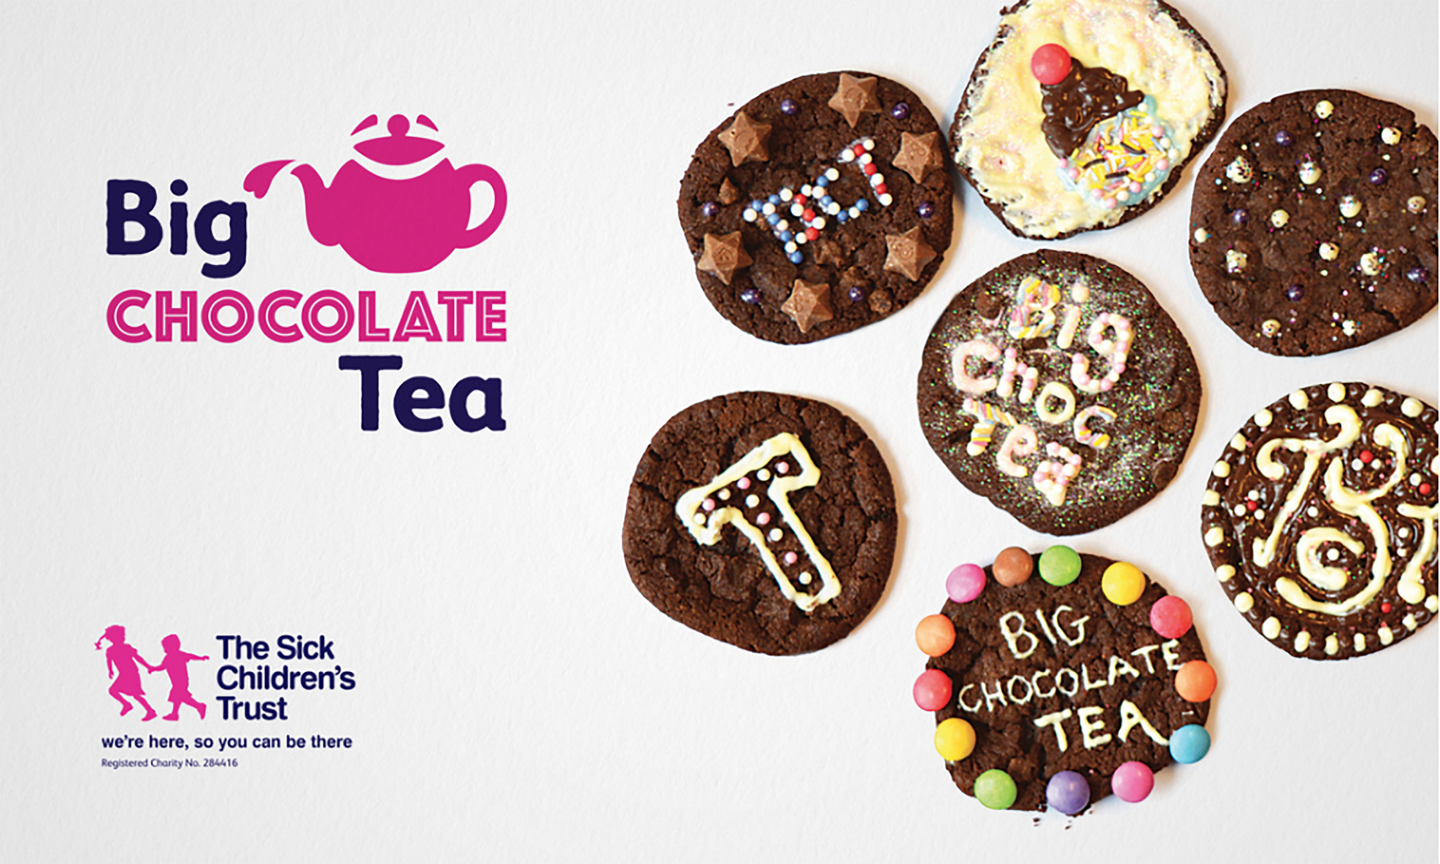 The Sick Children's Trust - Big Chocolate Tea Branding